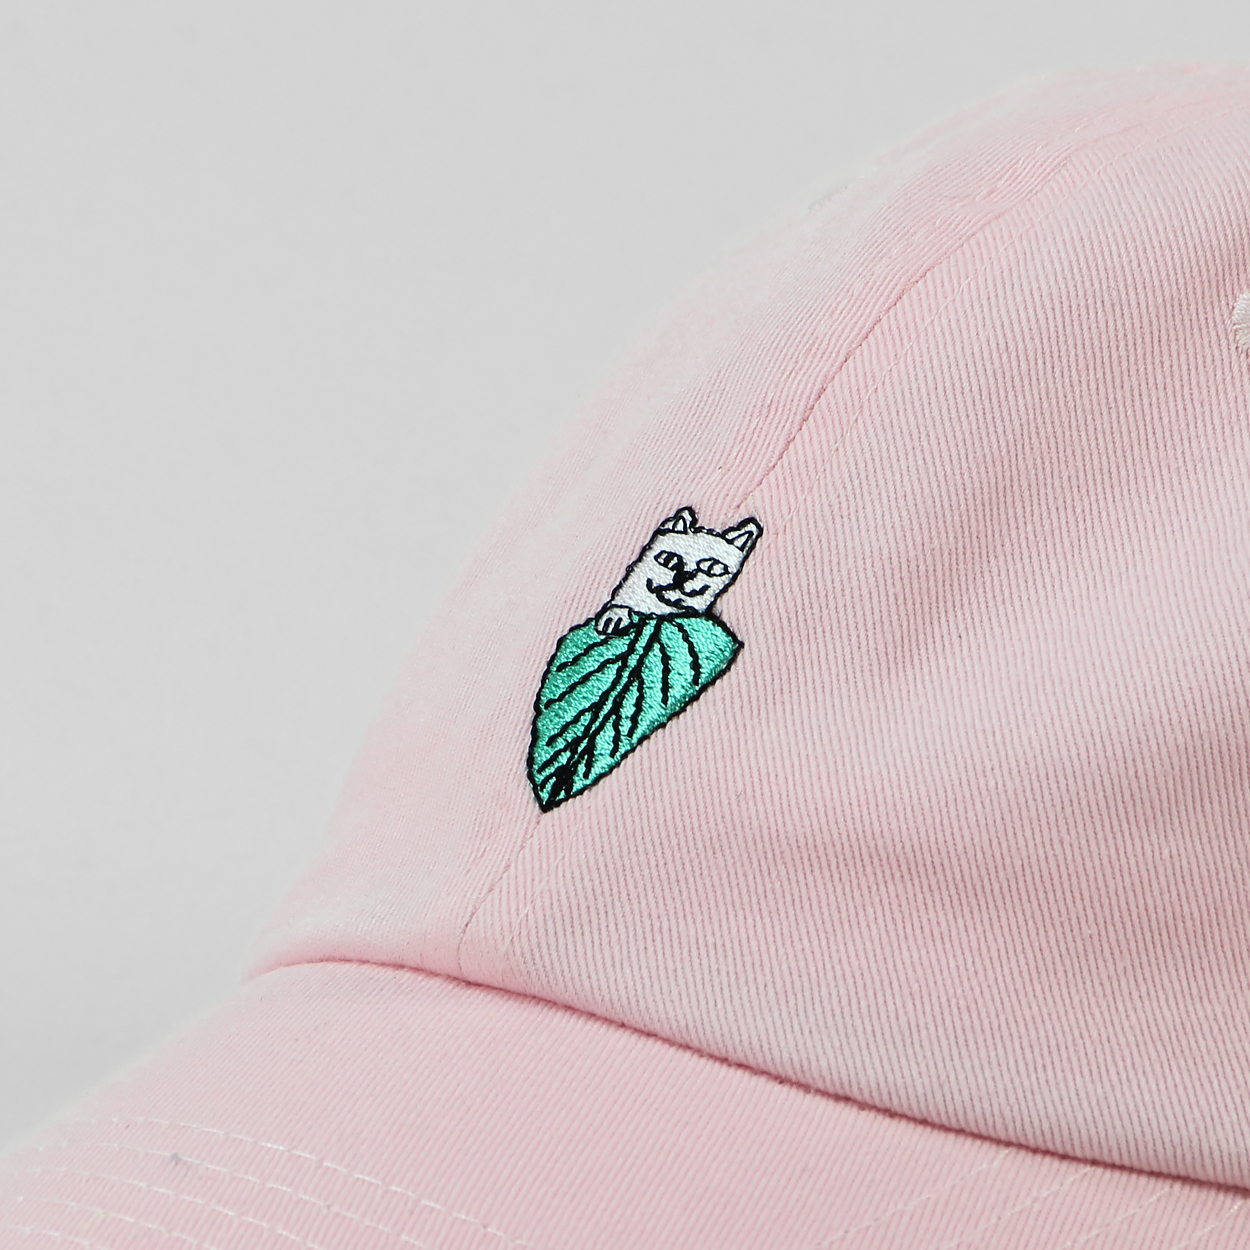 Ripndip Mens Nermal Leaf Dad Cap Light Pink One Size Fits Most £26.60 5483636bf33e